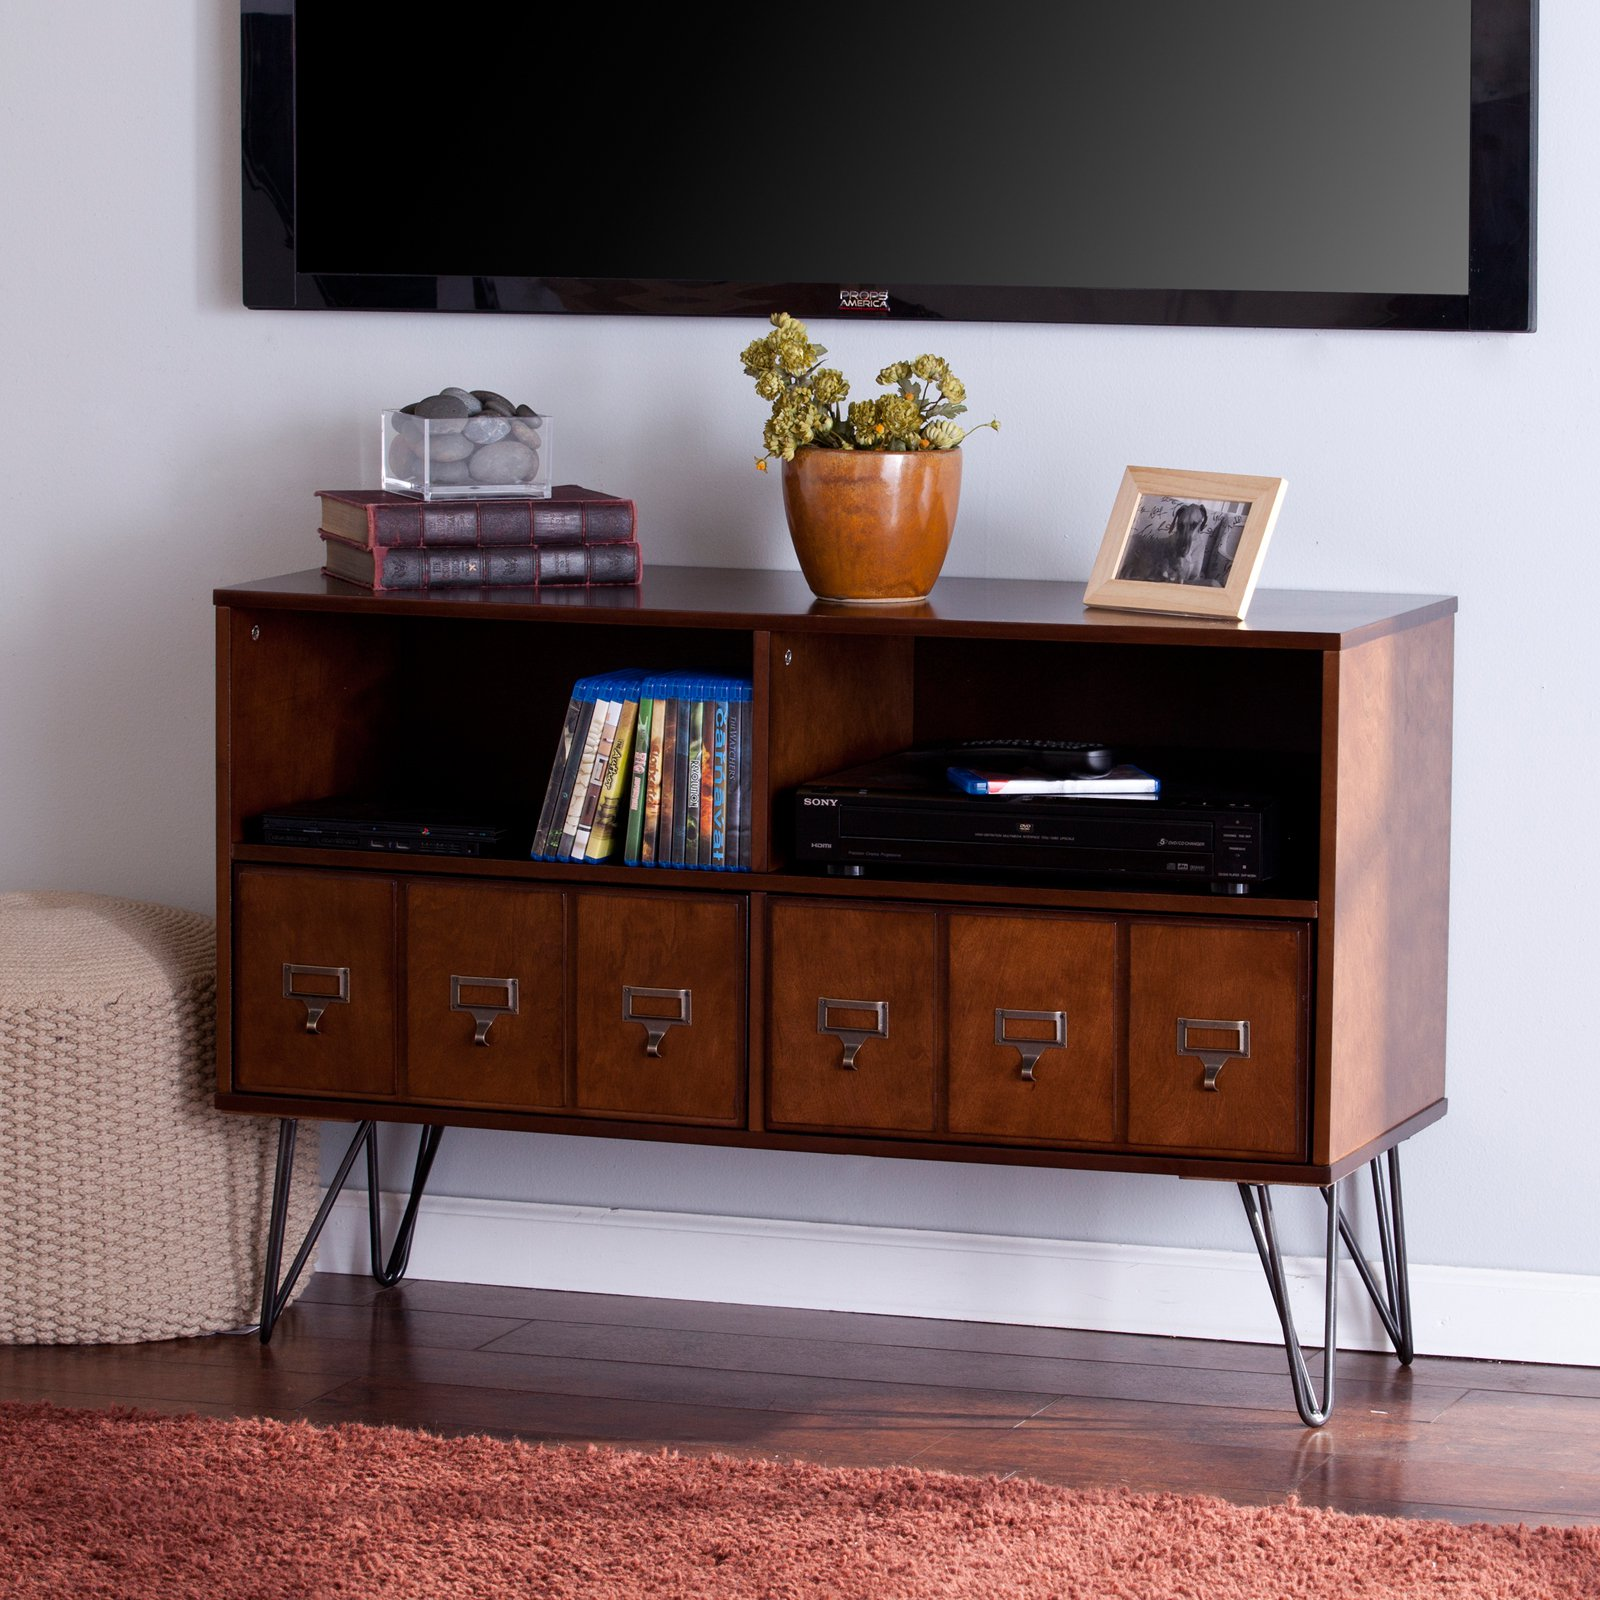 Southern Enterprises Blankenship 46 in. Media Console - Whisky Maple